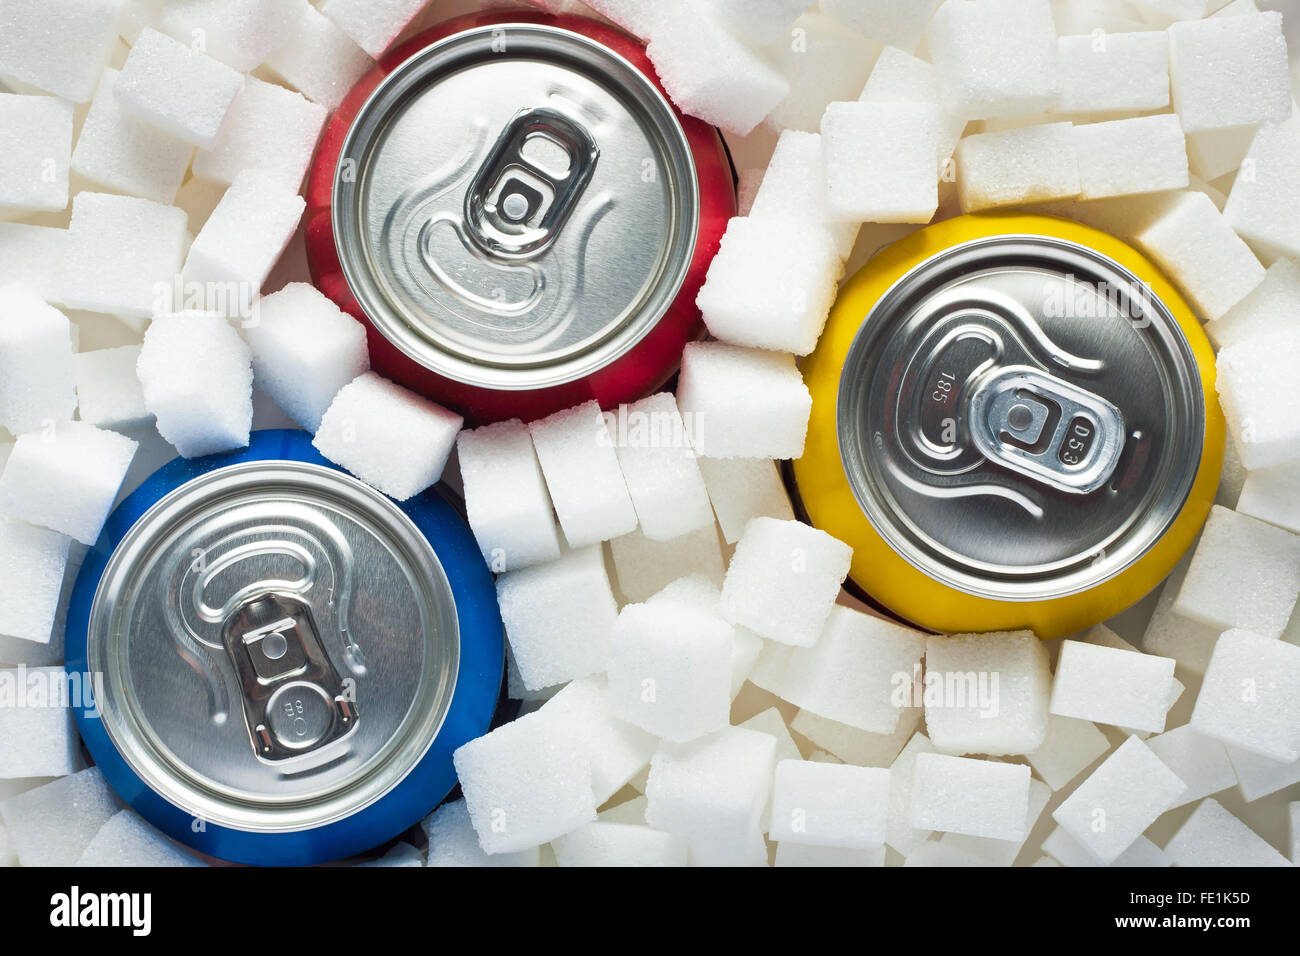 Unhealthy food concept - sugar in carbonated drinks. Sugar cubes as background and canned drinks - Stock Image